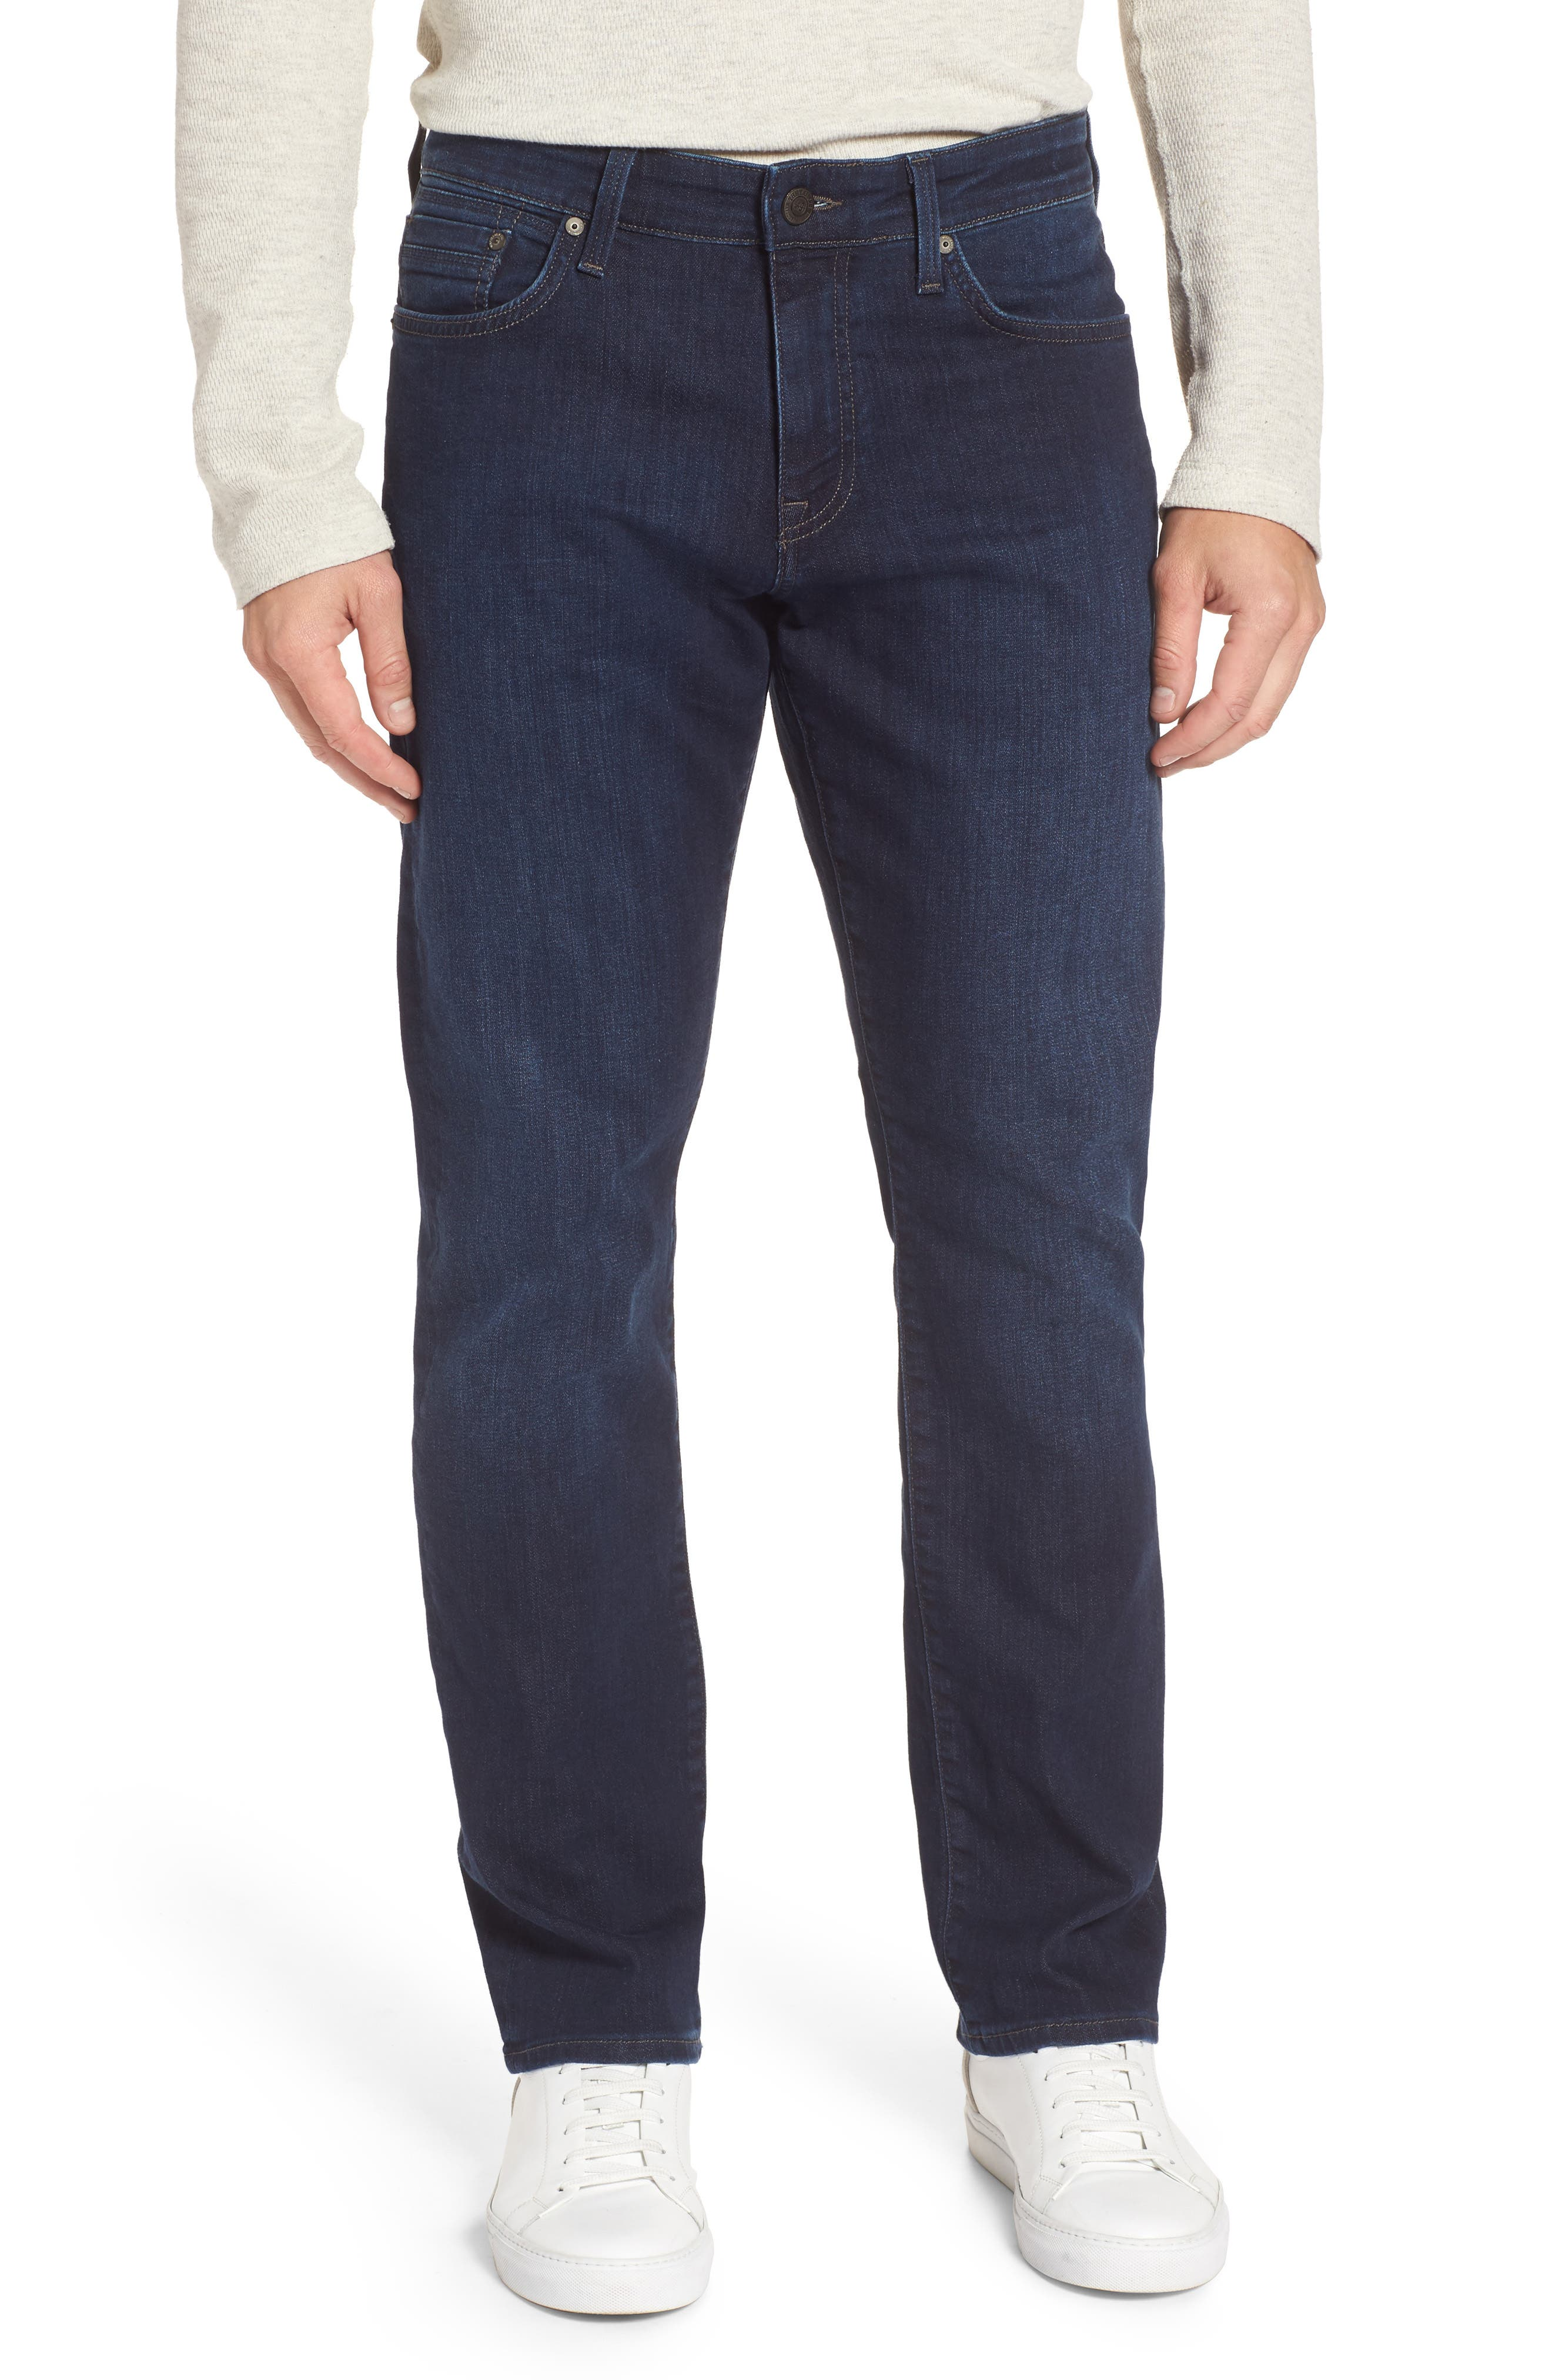 Myles Straight Fit Jeans,                             Main thumbnail 1, color,                             Deep Clean Comfort